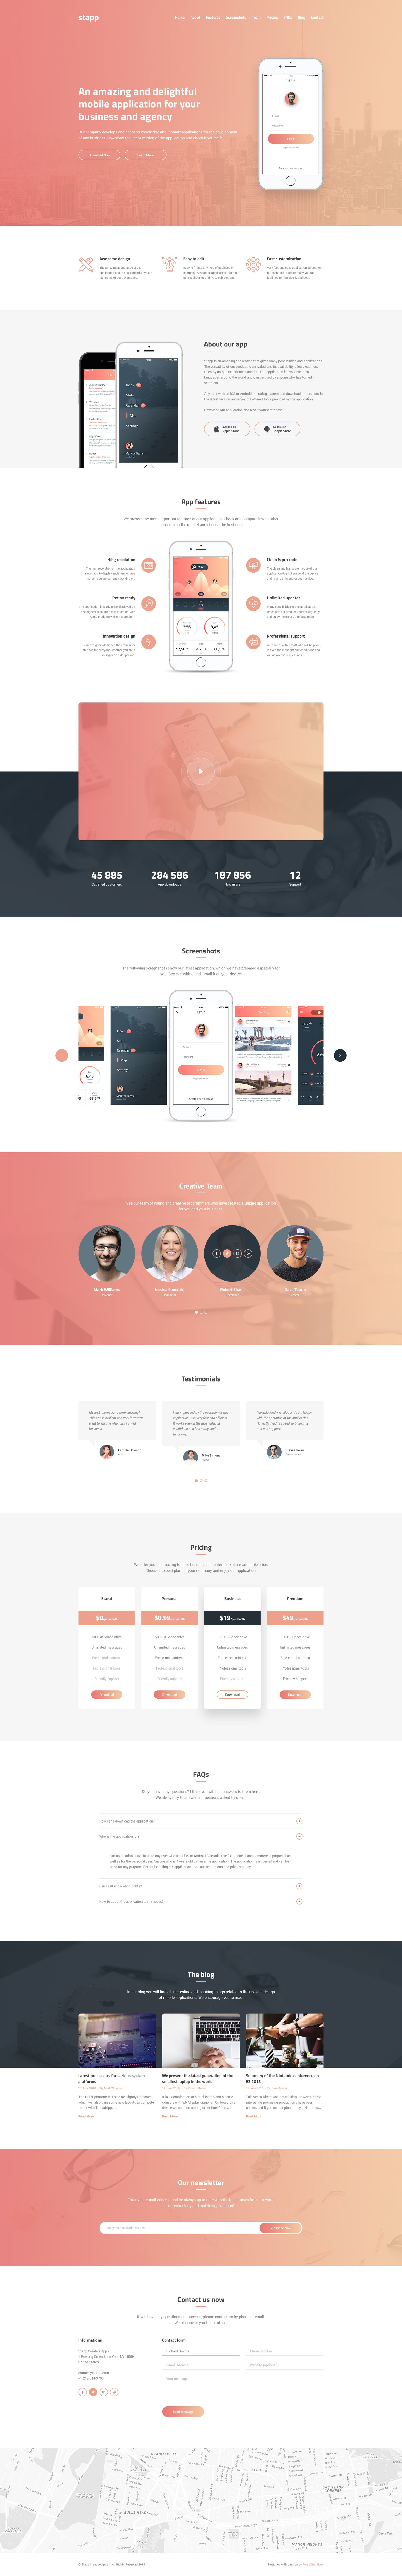 Stapp – Business Multipurpose PSD Template Screenshot 1